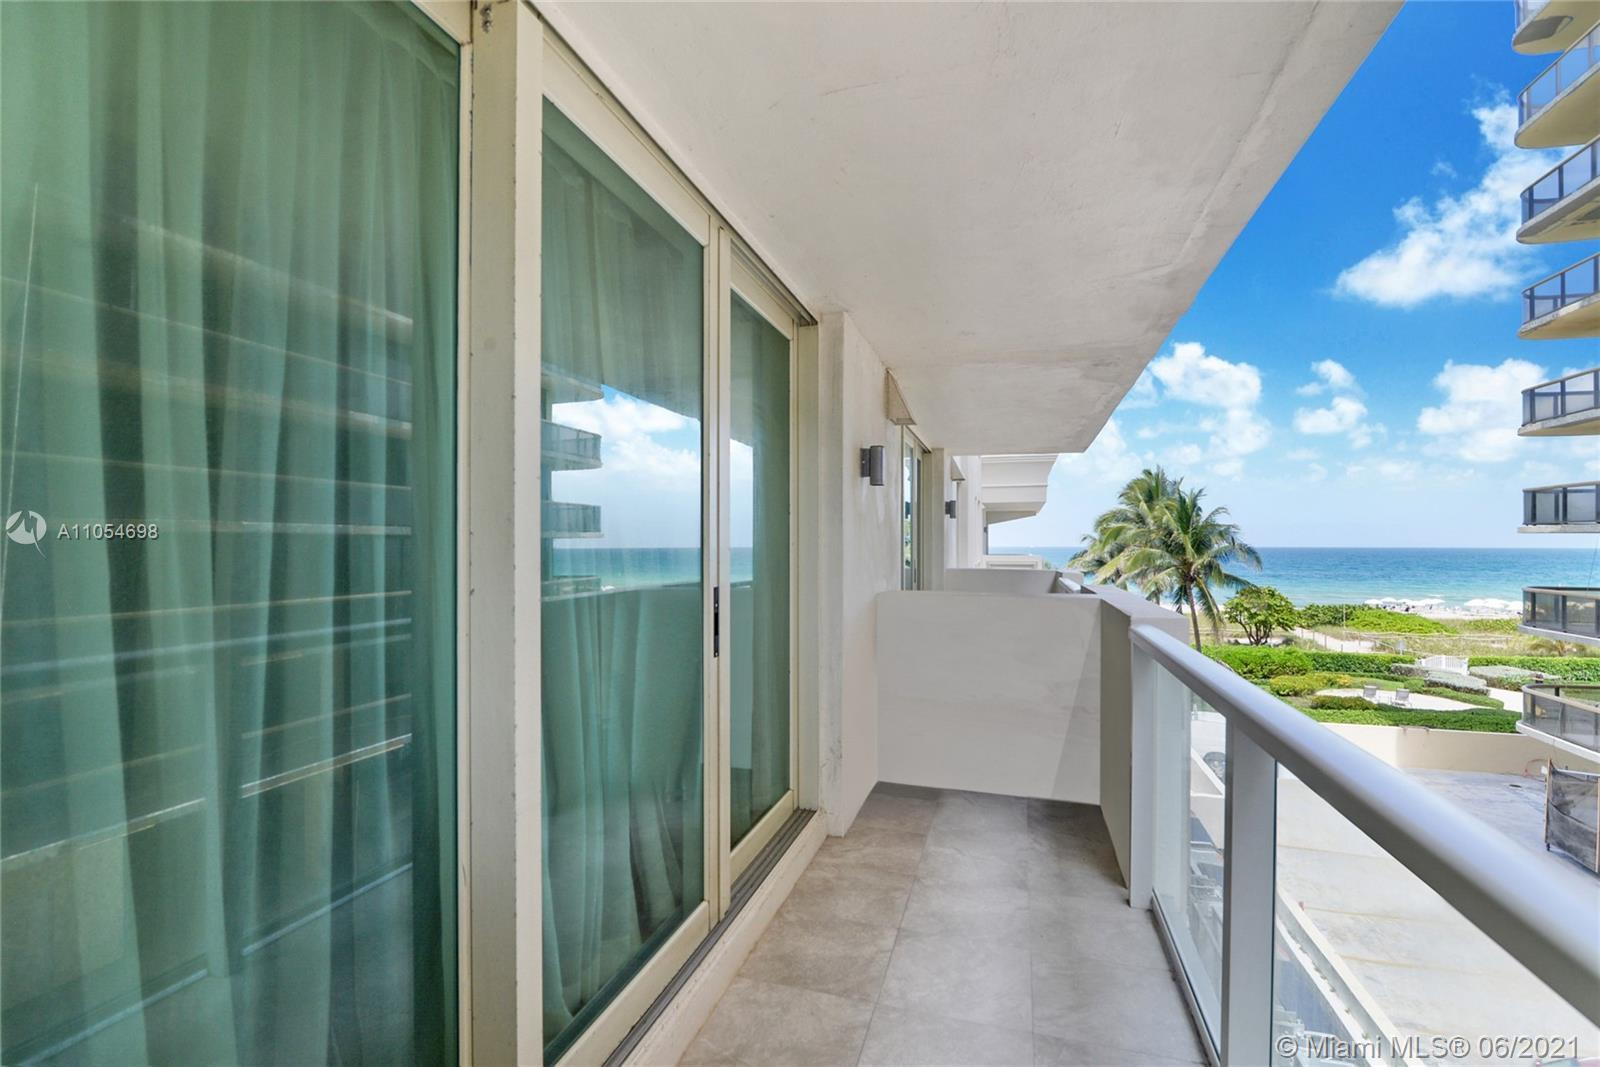 Welcome to Residence 304 at Spiaggia Ocean. Perfect Beach retreat. Cozy condo 1 Bedroom plus Den (co